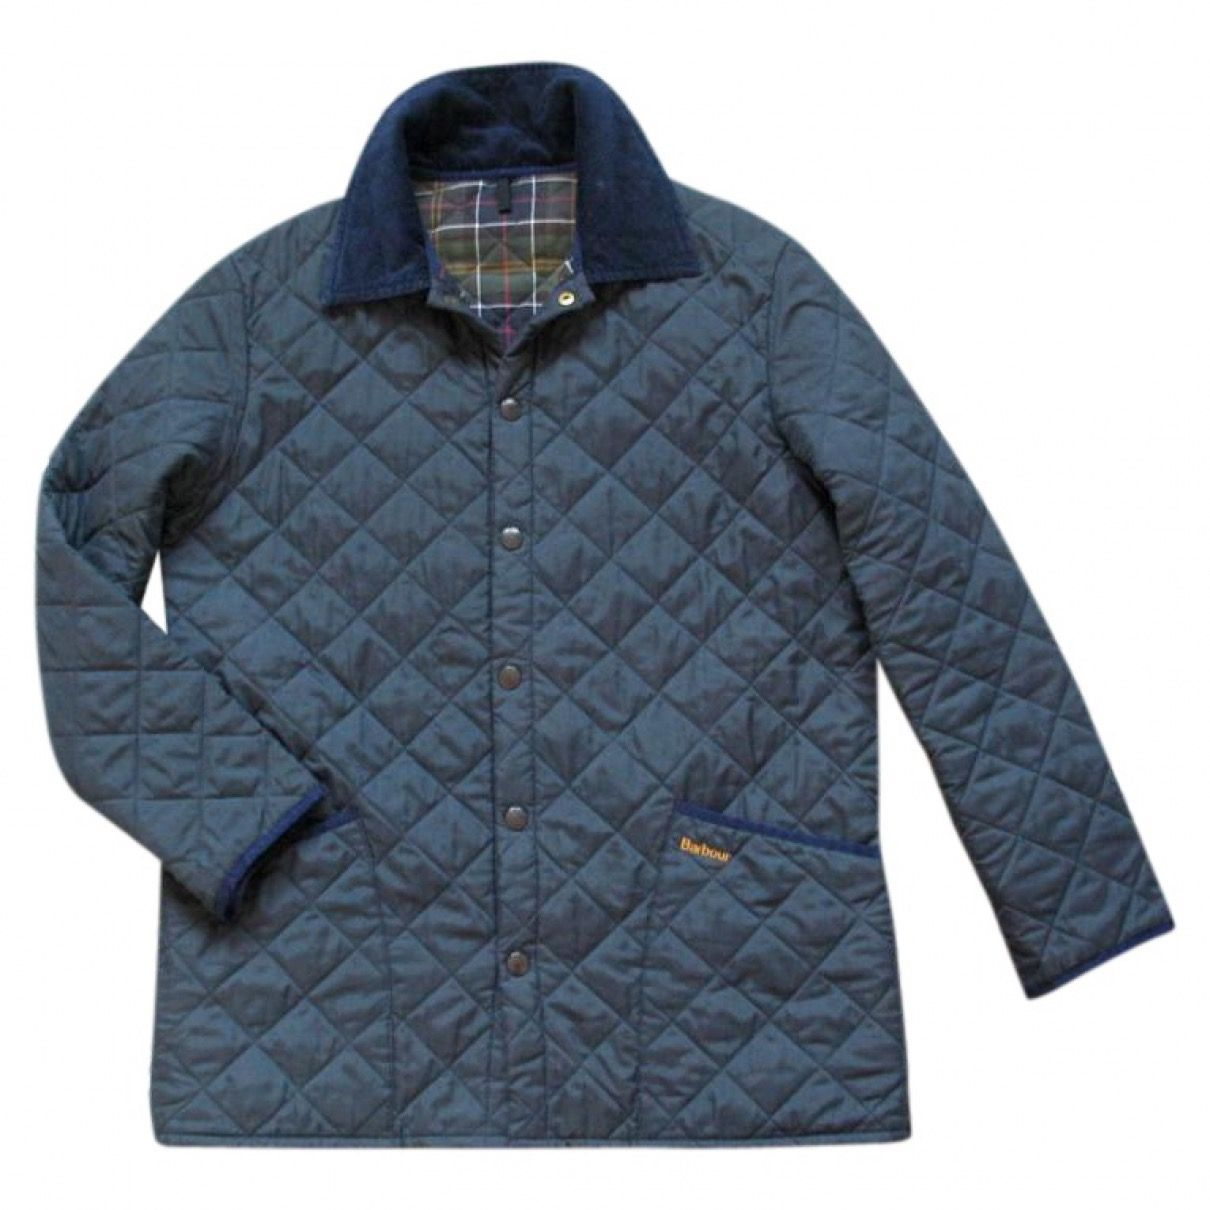 Warm quilted jacket | Barbour | Catchys | BARBOUR JACKETS ... : are quilted jackets warm - Adamdwight.com